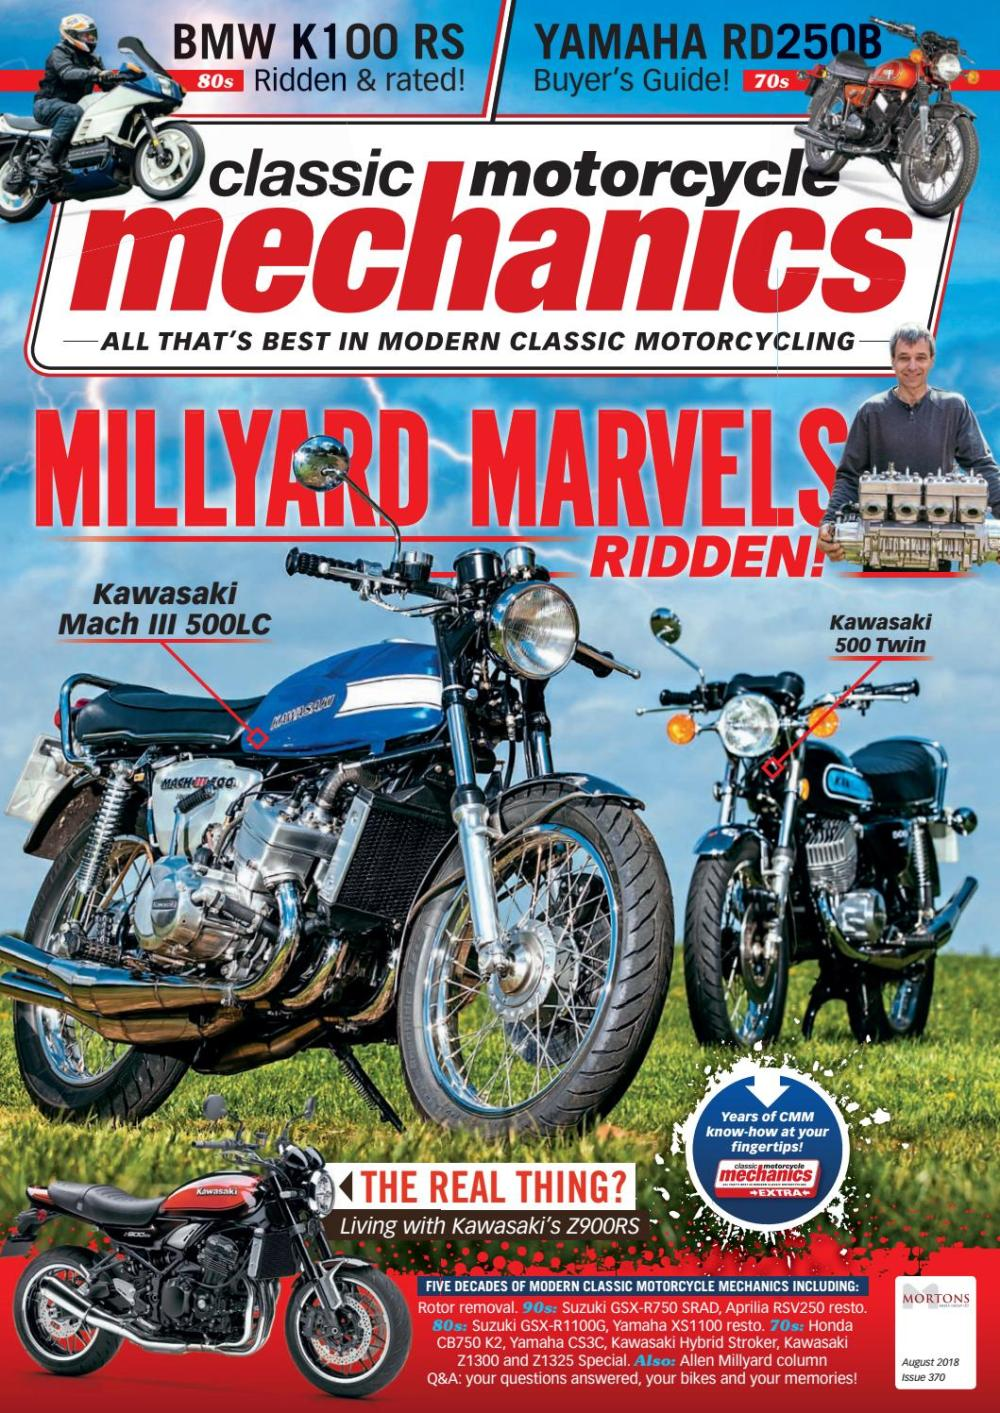 medium resolution of classic motorcycle mechanics august 2018 by mortons media group ltd issuu